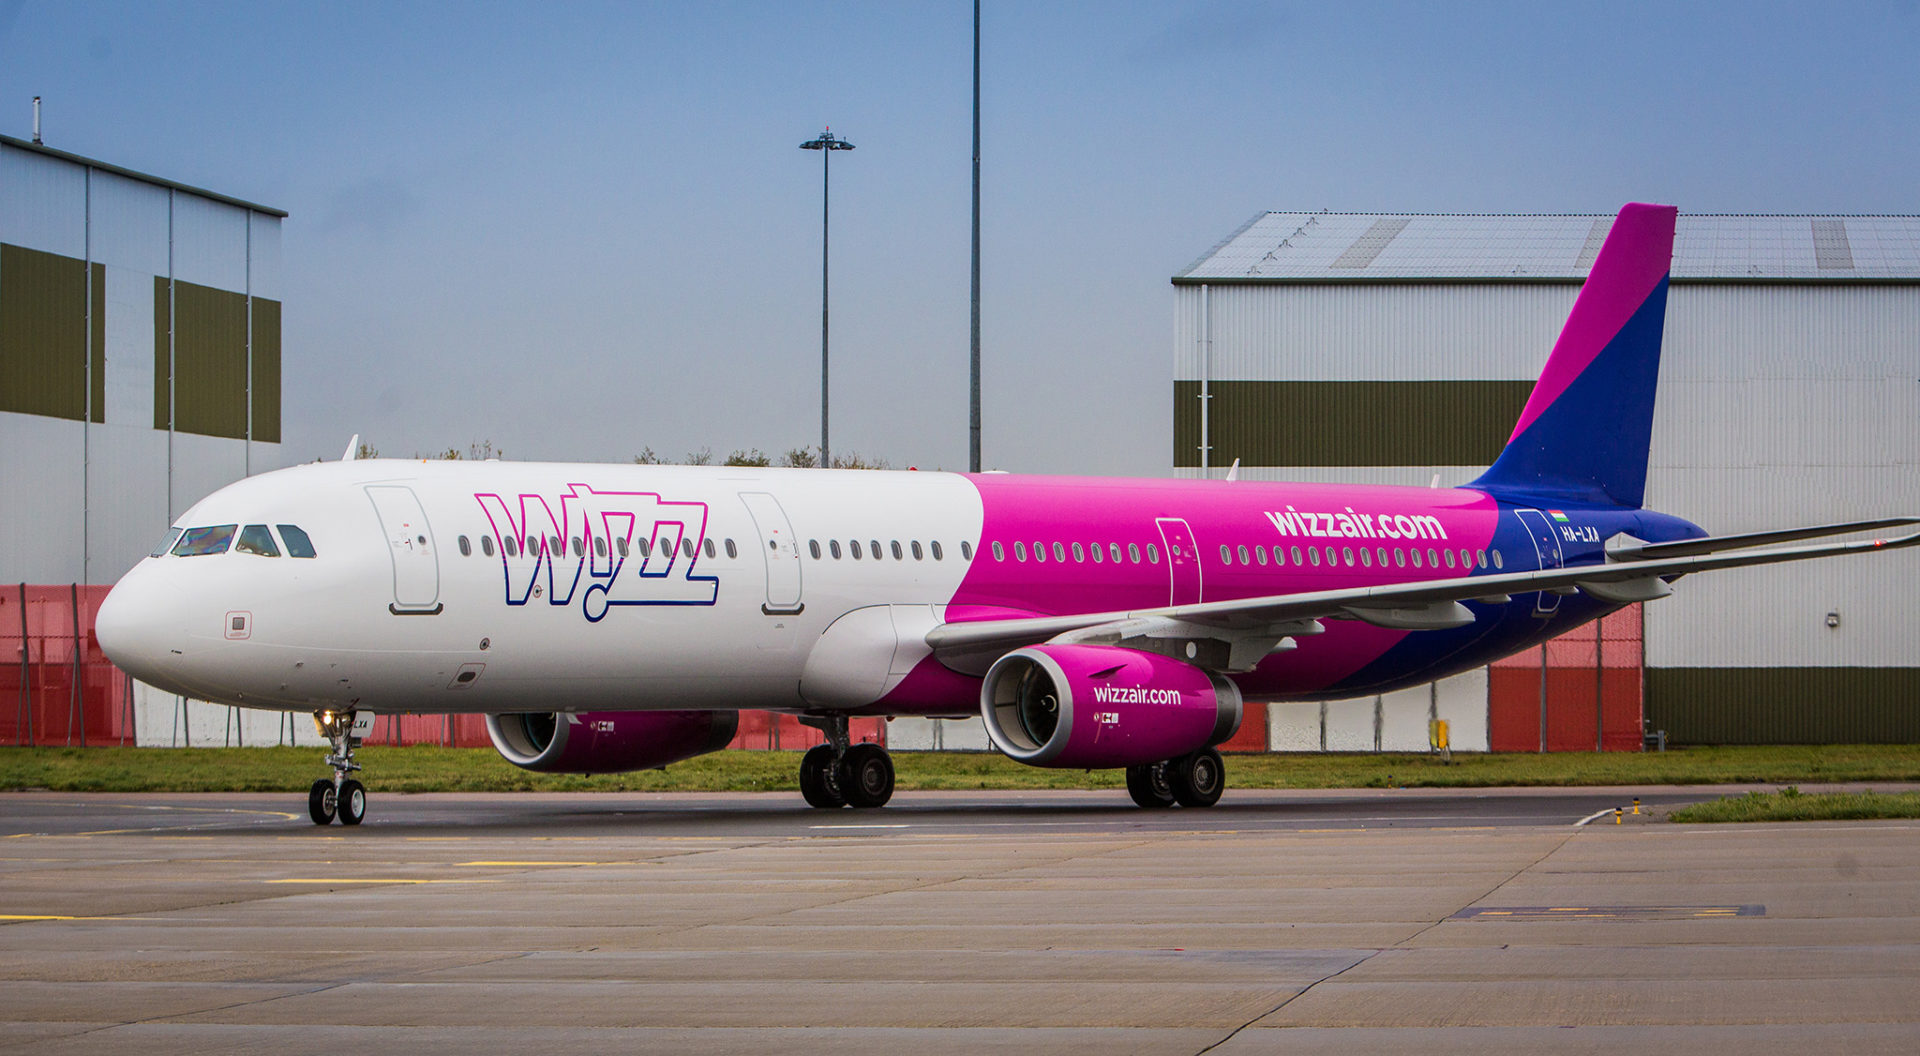 Aaib Report Says Wizz Air Airframe Swap Caused Take Off Issue